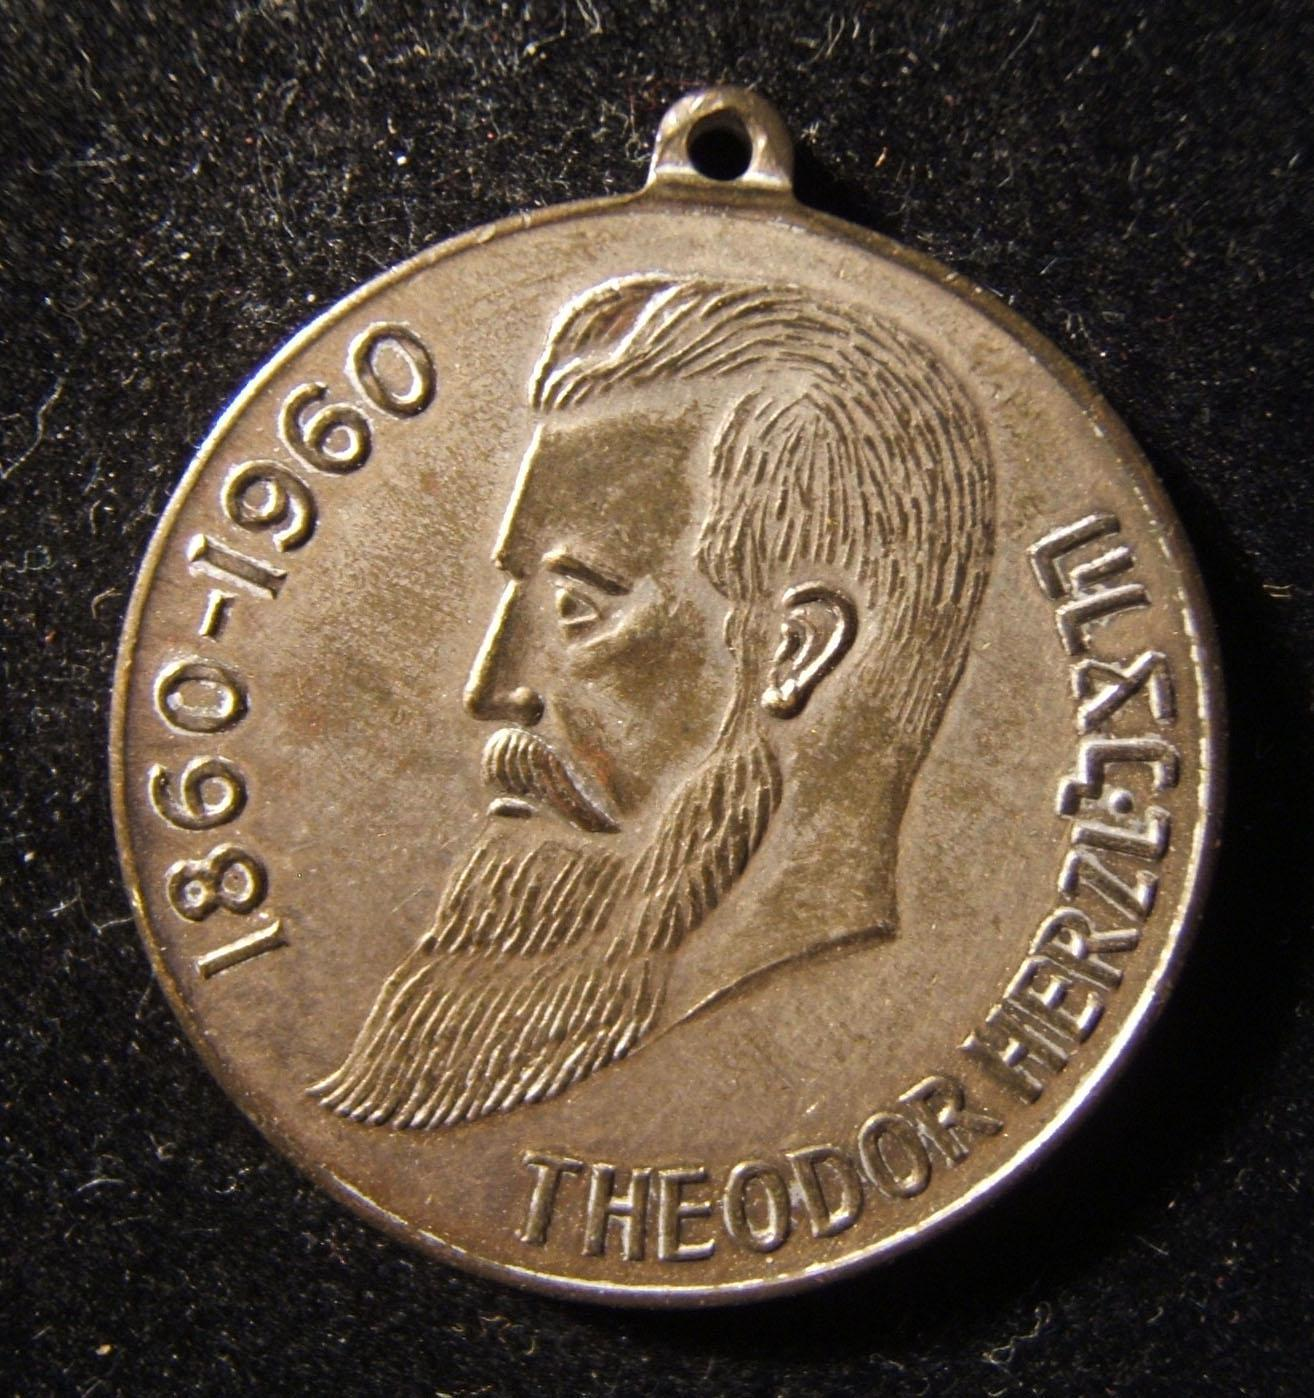 Israel: Theodore Herzl centennary commemorative tallion; not maker-marked; silver gilded brass(?); size: 31.25 x 34.5mm; weight: 15.4g. Obverse depicts left-facing head of Herzl wi